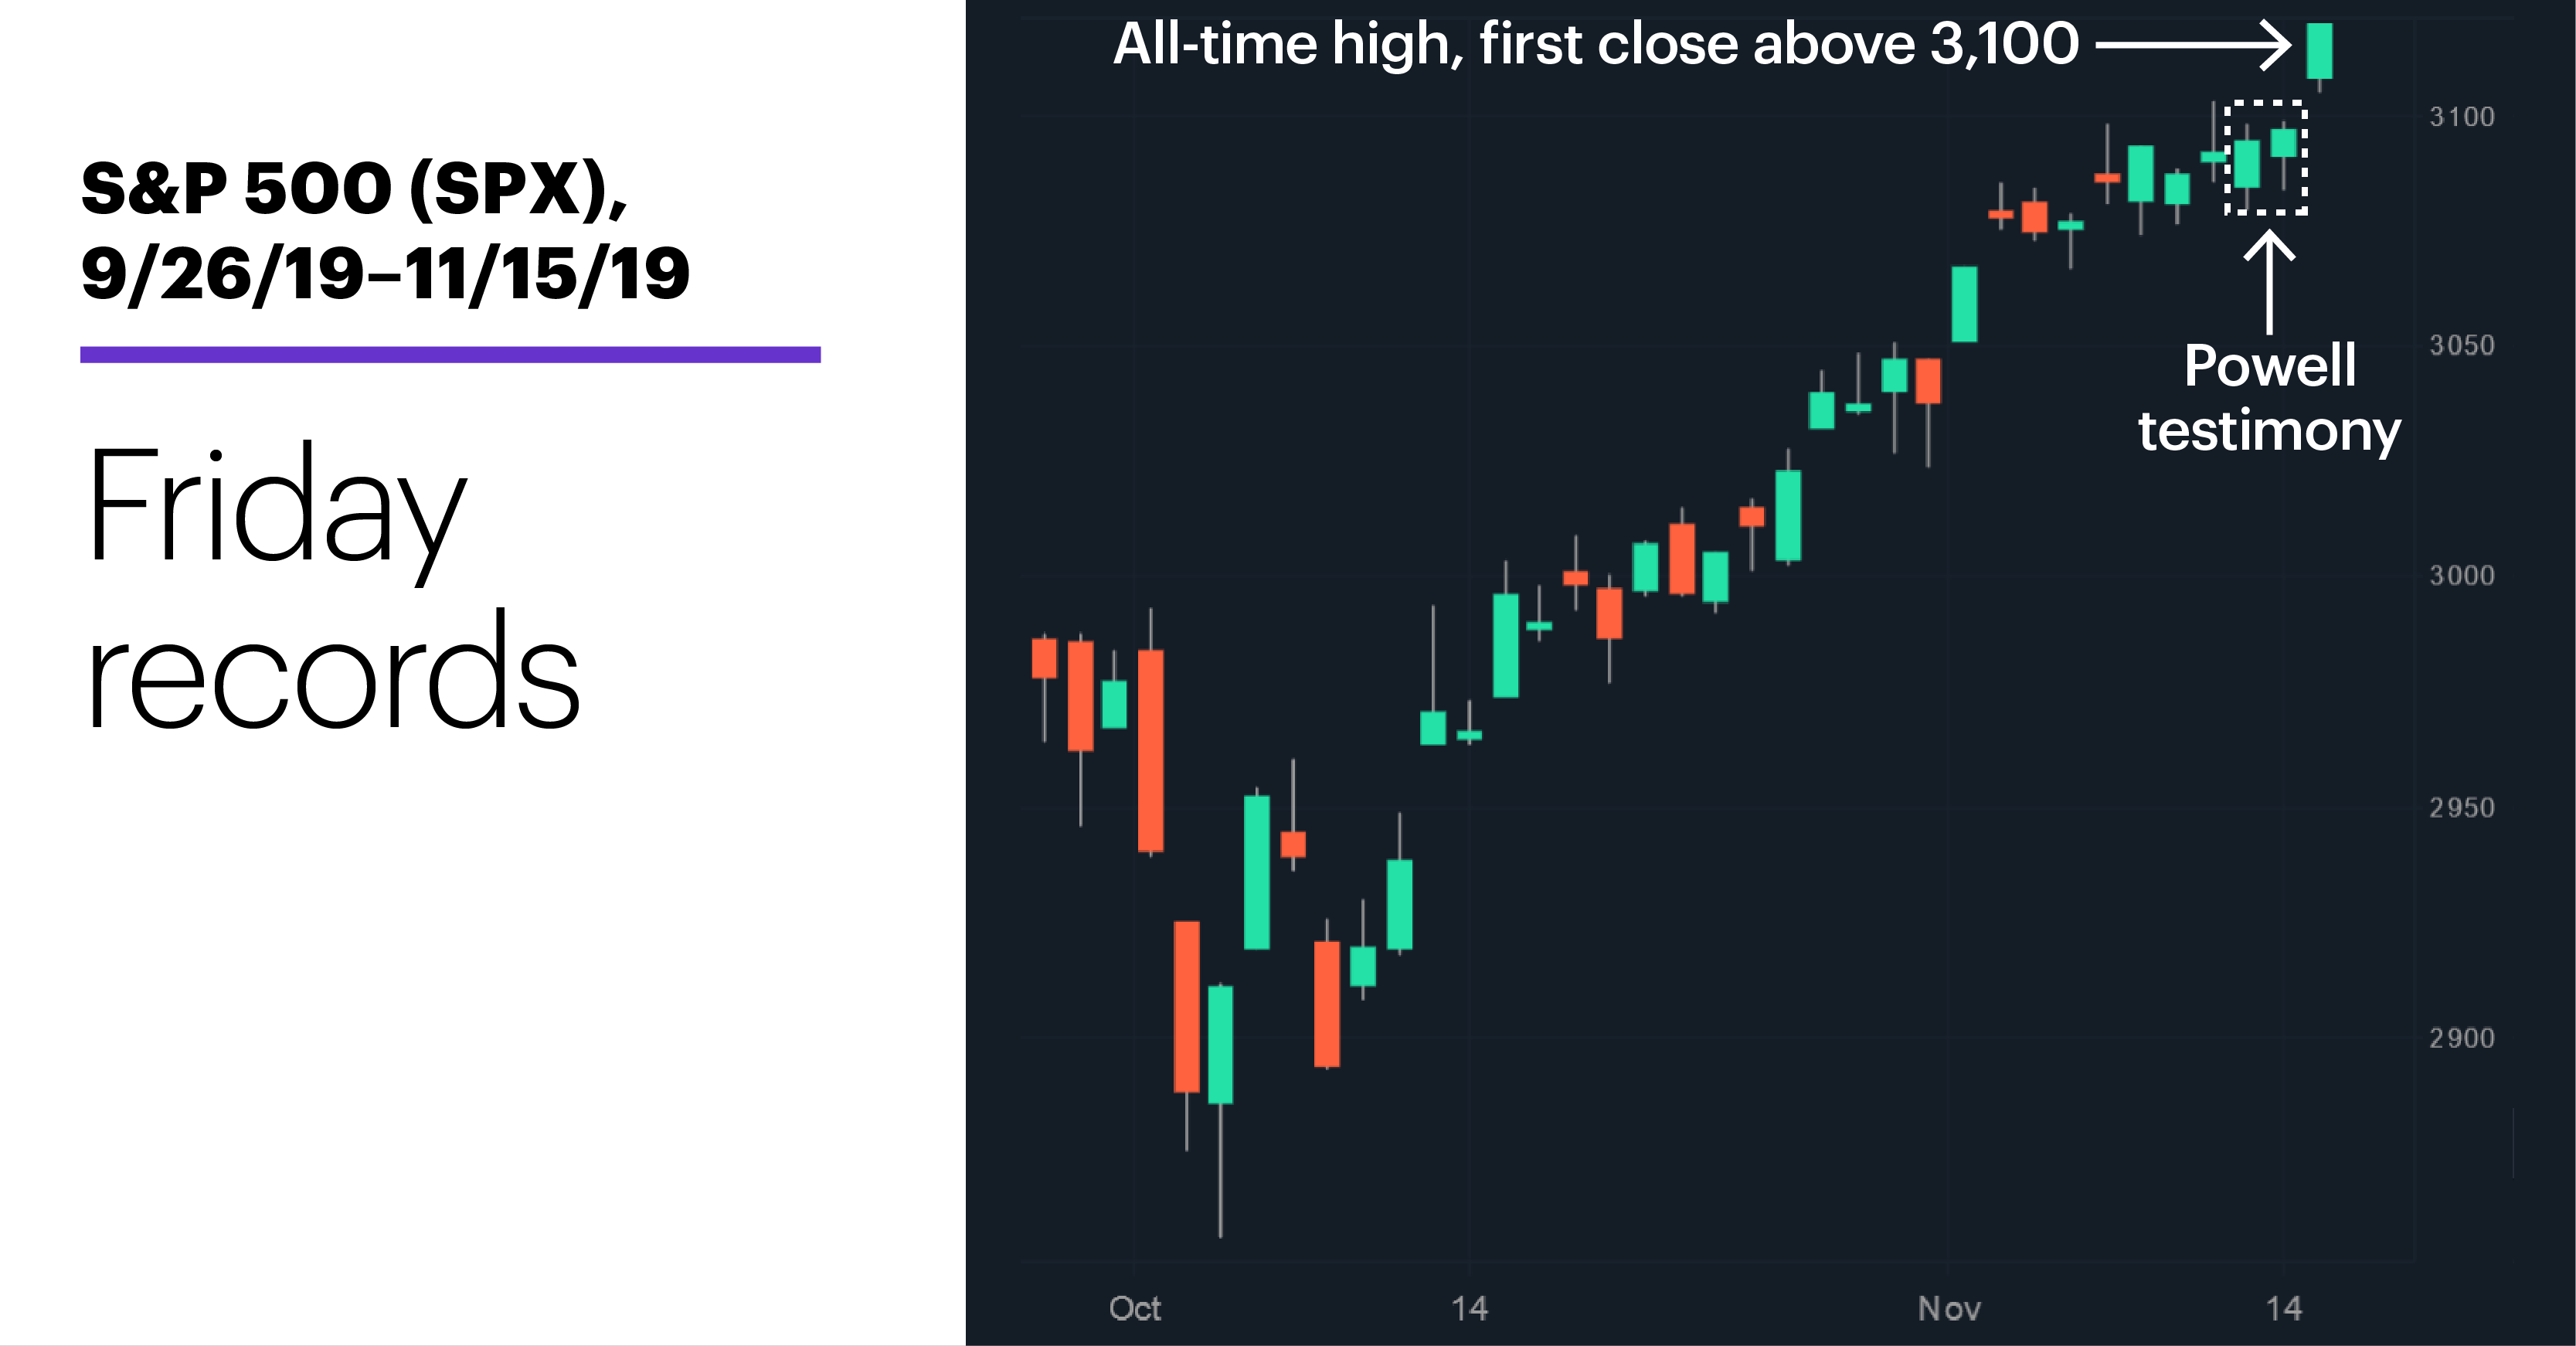 Chart 1: S&P 500 (SPX), 9/26/19–11/15/19. S&P 500 (SPX) price chart. Friday records.